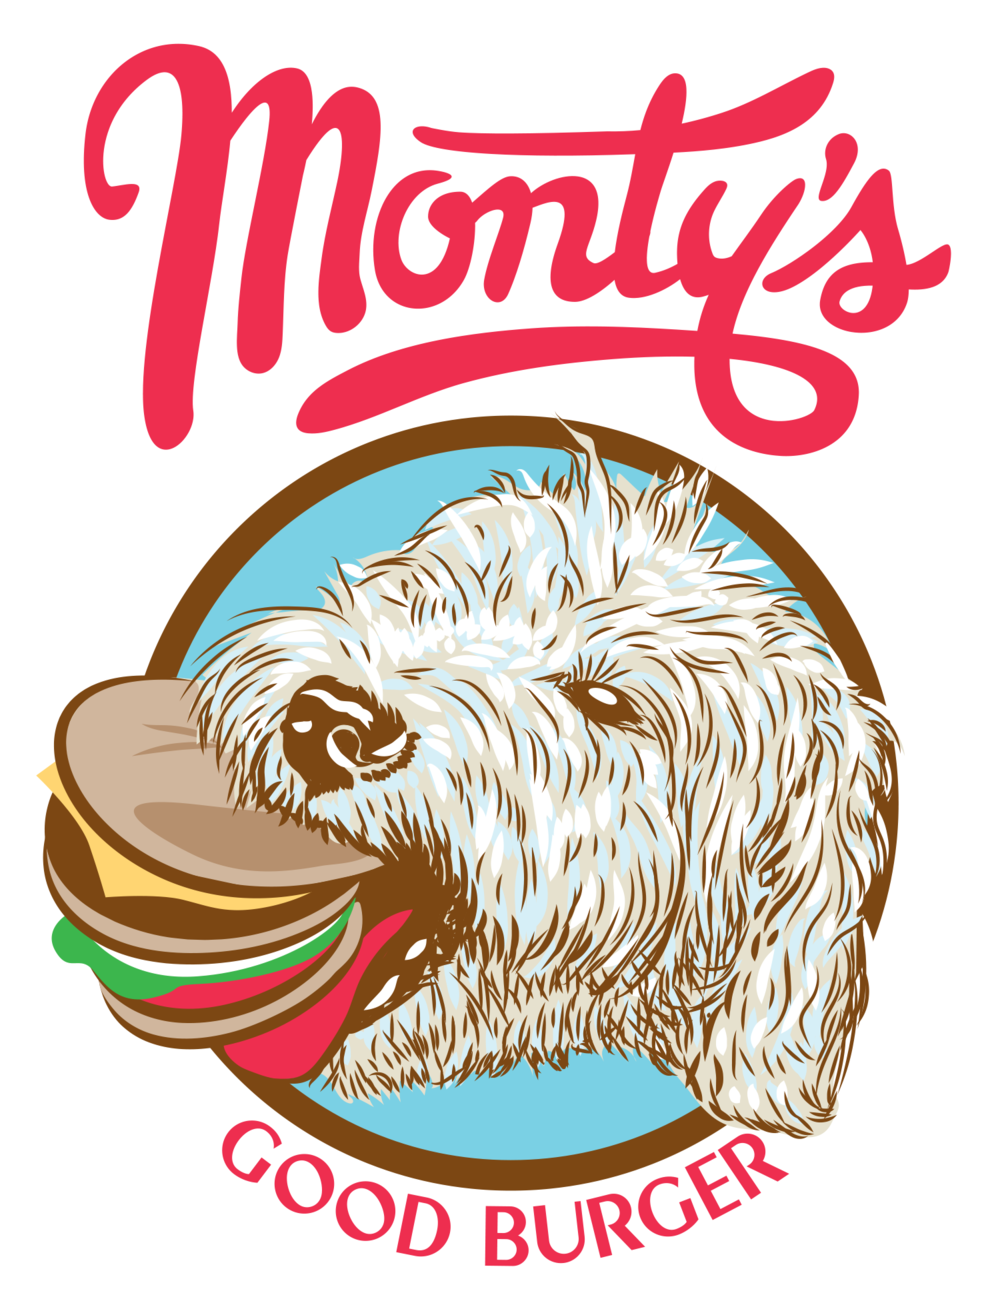 Illustration of Dog with Hamburger in Mouth